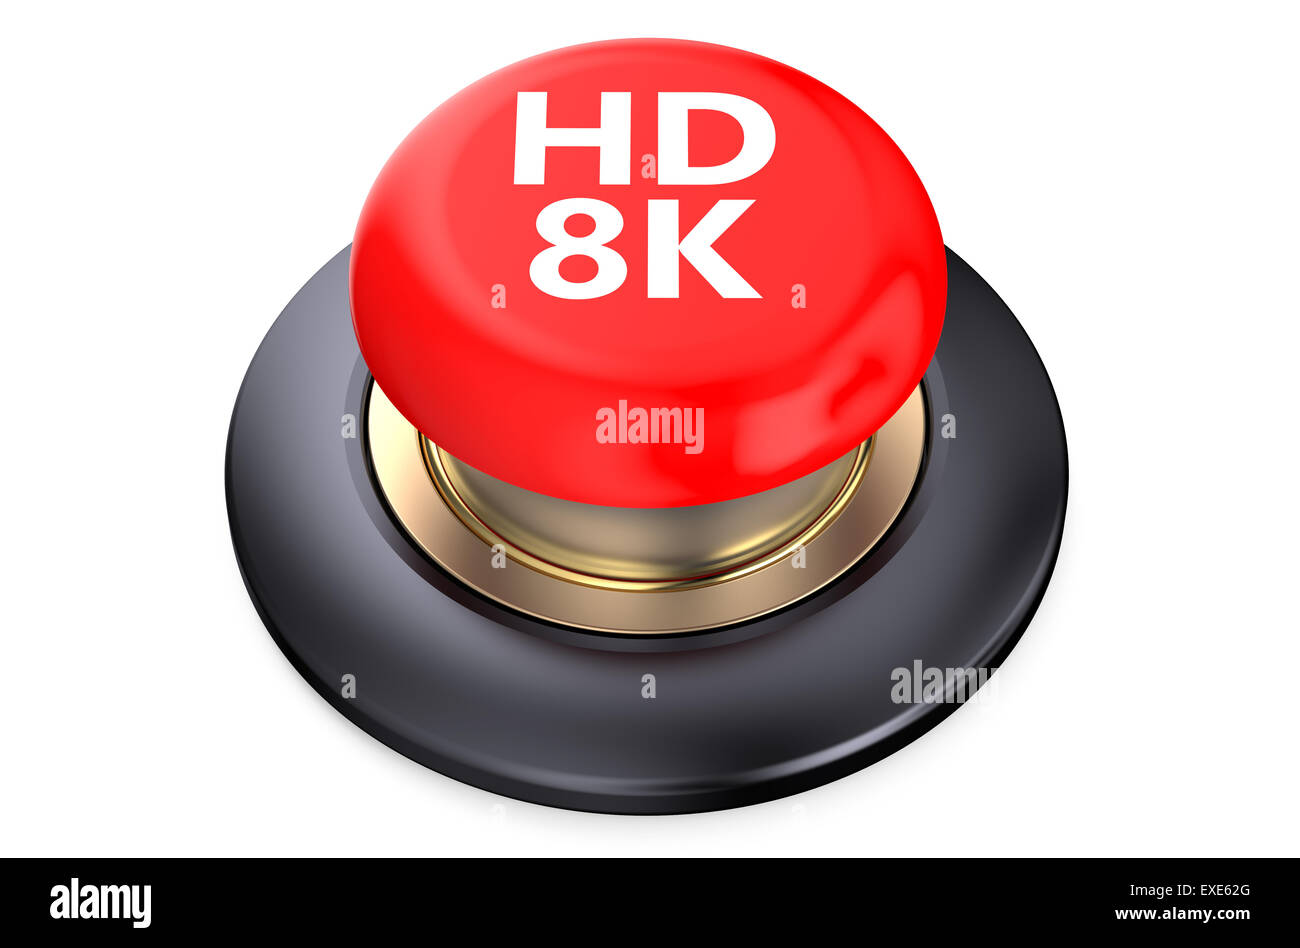 'HD 8K' red pushbutton  isolated on white background - Stock Image